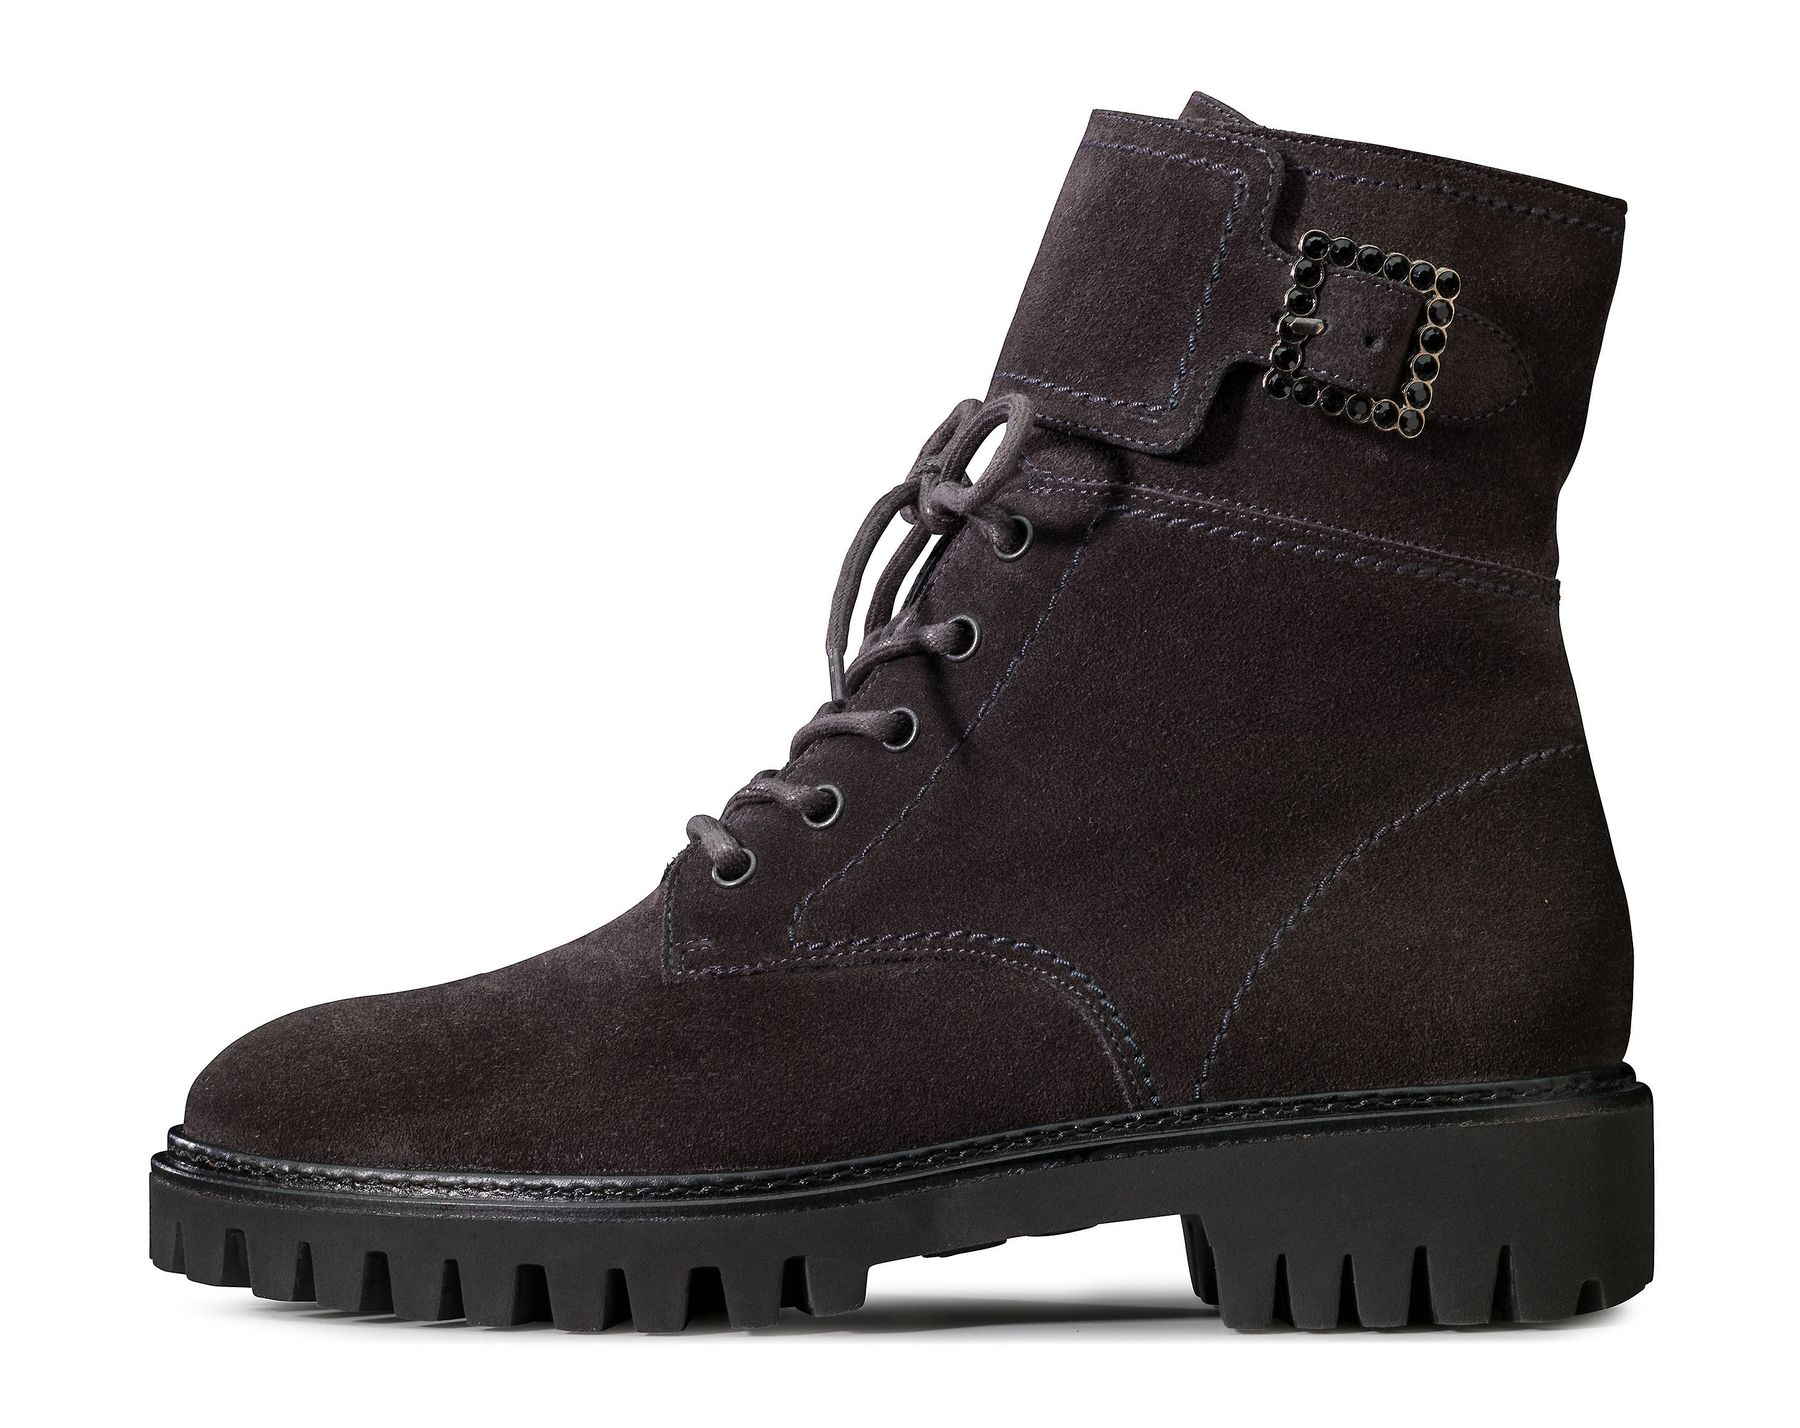 online store 4b69e b1c13 Striking Lace Up Bootie in dark grey - Paul Green